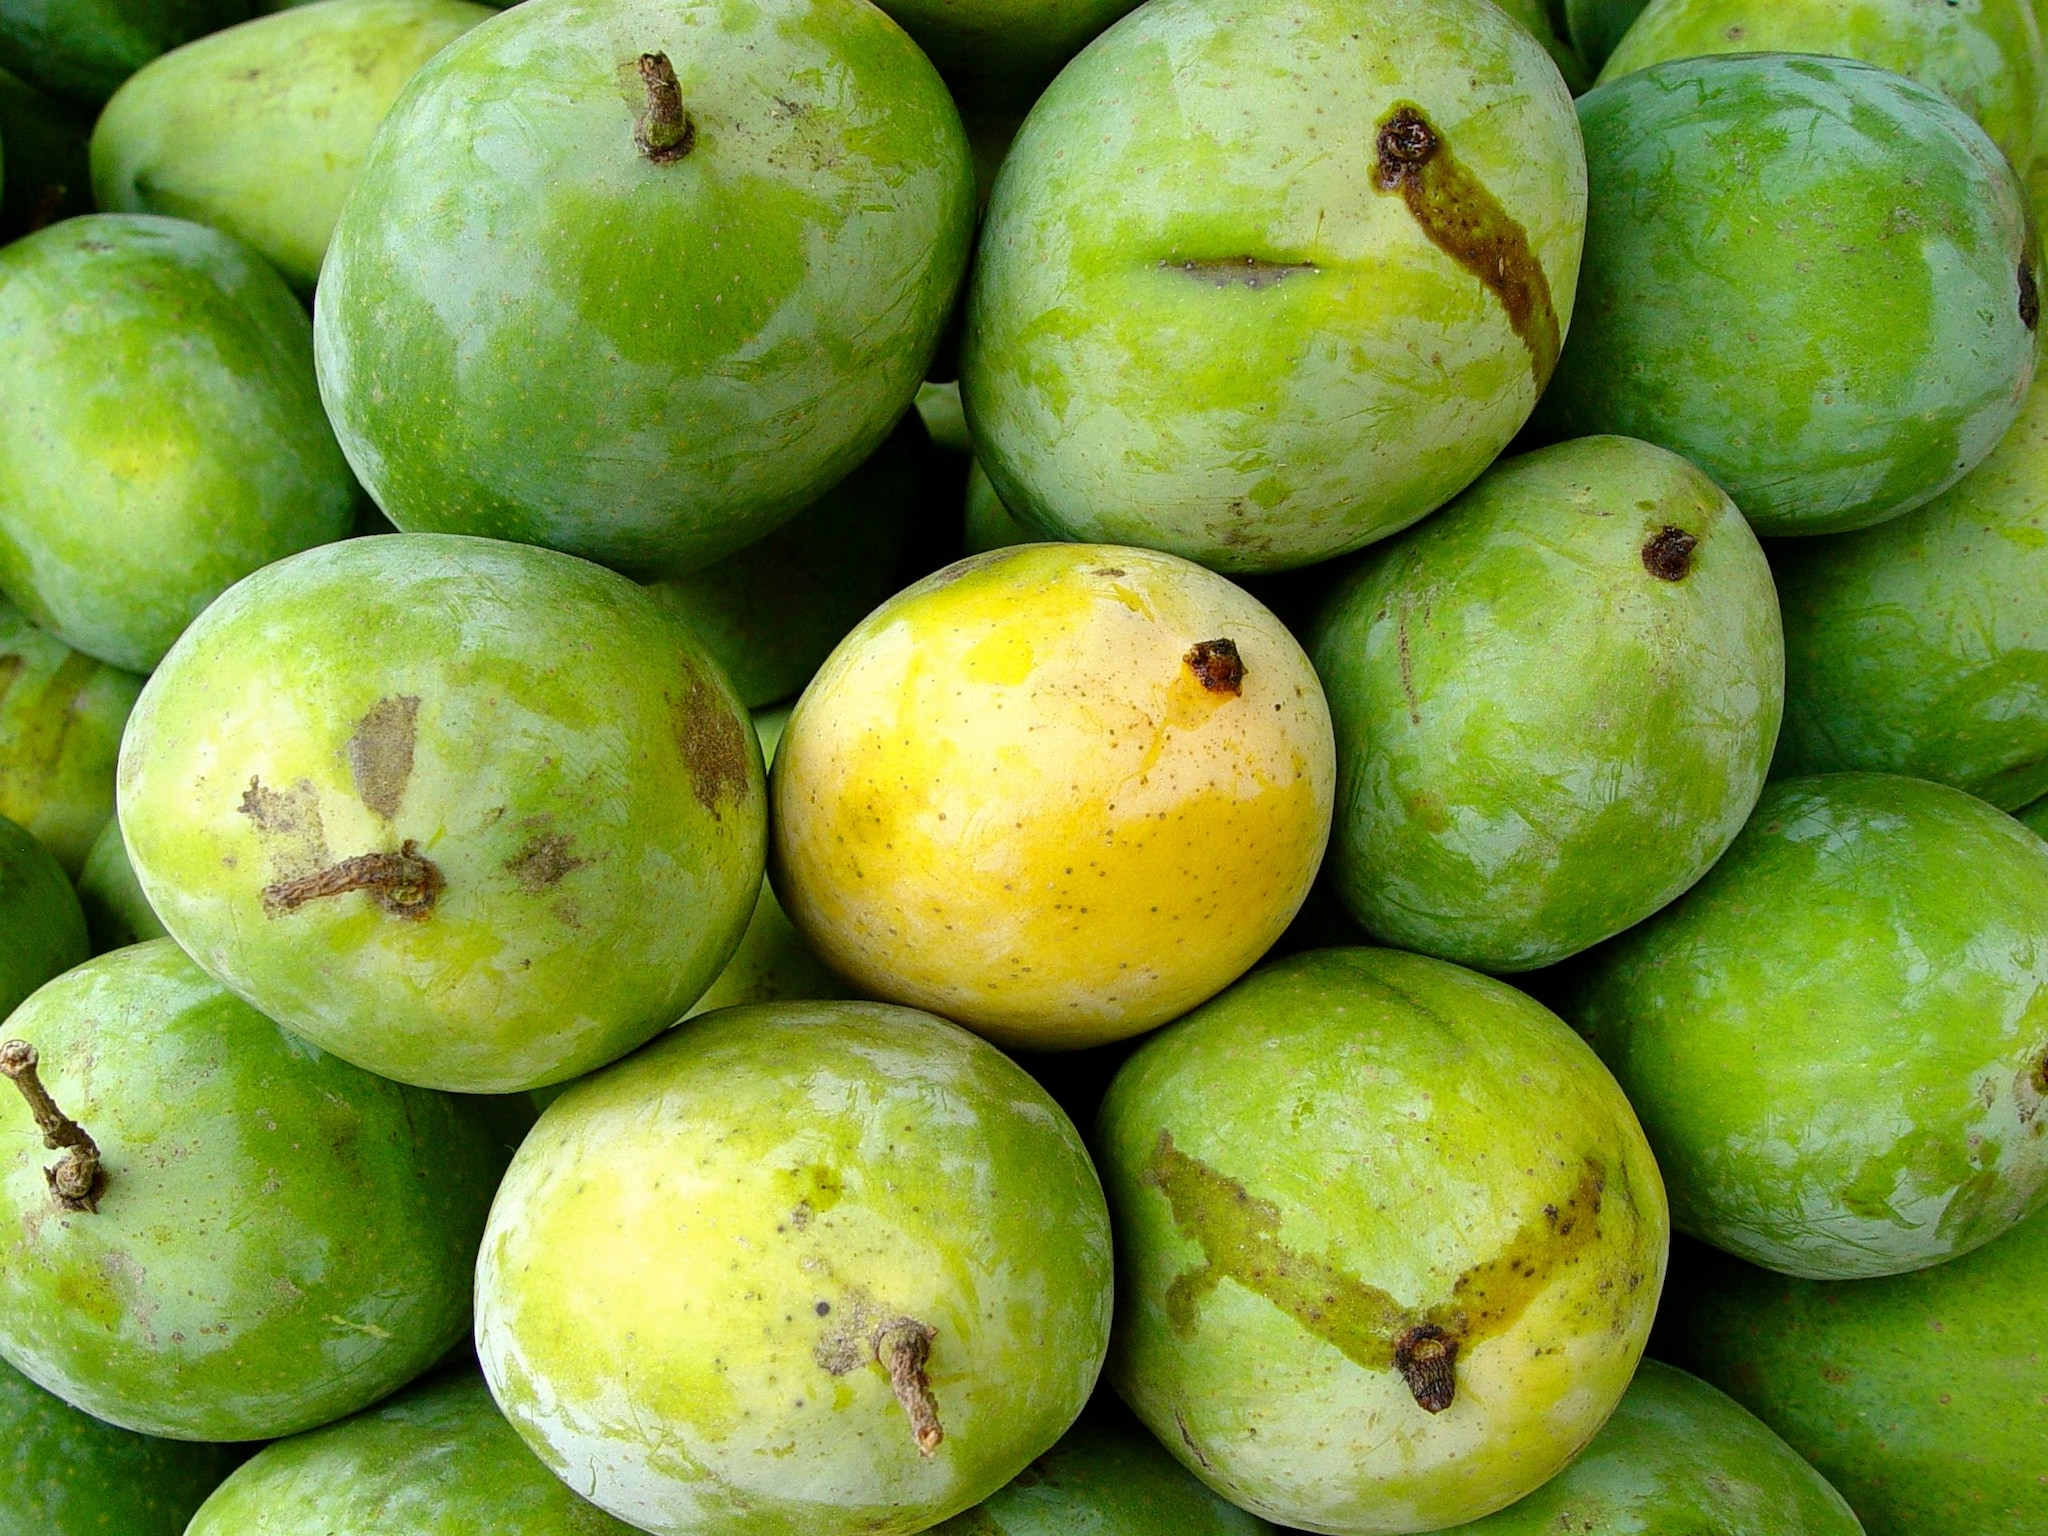 What's in a name? Though nearly 1,000 mango varieties are grown in India, very few are commercially grown; their names acquiring different names in different regions. For example, langra (literally, lame), is name-loaded: Langarhi, Tikari (Farrukhabad, UP), David Ford, Hardil-Aziz (Bhopal), Sylhet (Meerut, UP), Ruh-e-afza, Darbhanga and Chhatpa. Dusseheri is also known as Aman, Aman Dashehari, Nirali Aman and Kamyab while Bombay Green gets varied names like Kali Bombai, Sarauli, Malda, Sheeri Dhan, Bhojpuri, Laile Alupu (source: ikisan.com) (Photographed here is the langra mango variety)